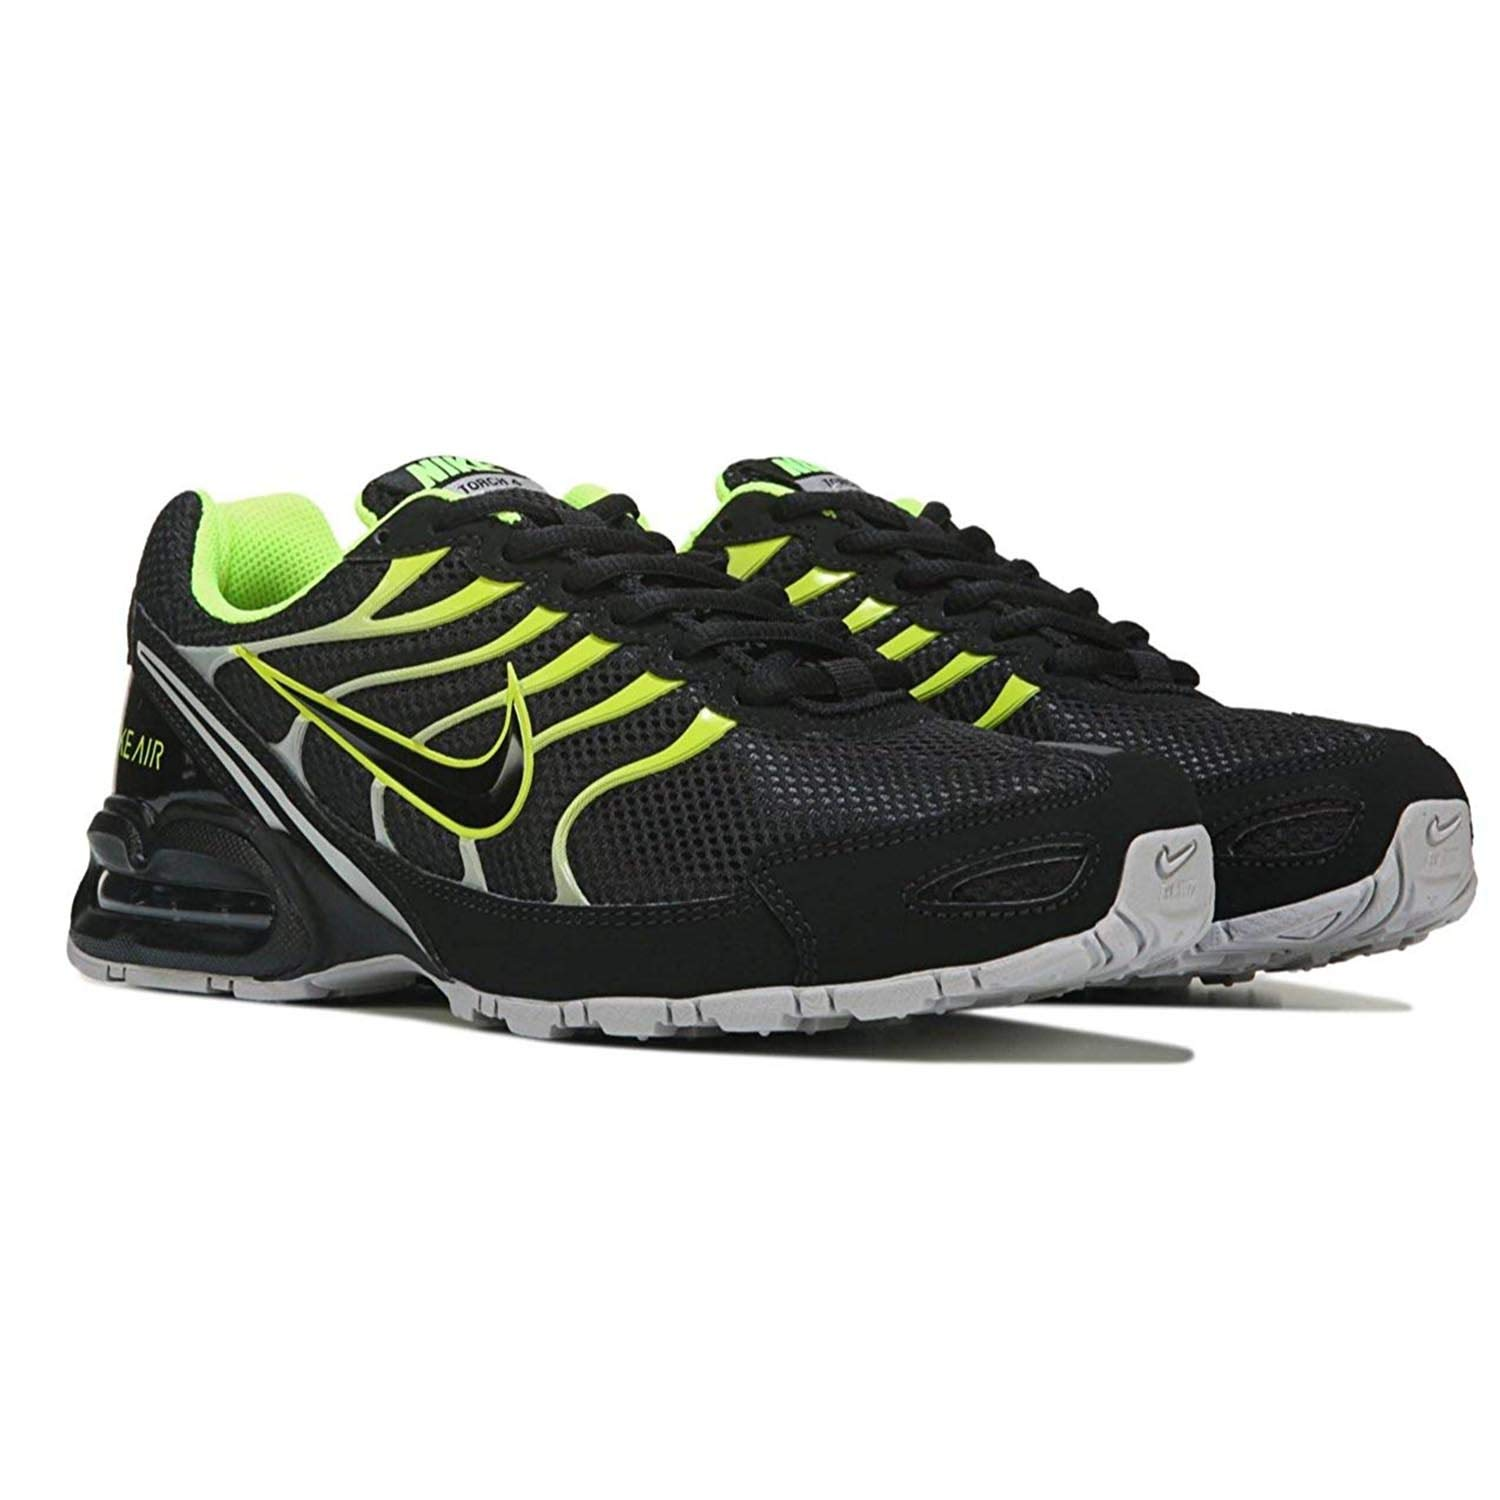 sale retailer 40c28 cb053 Amazon.com   Nike Men s Air Max Torch 4 Running Shoe Black Volt Atmosphere  Grey Size 12 M US   Road Running